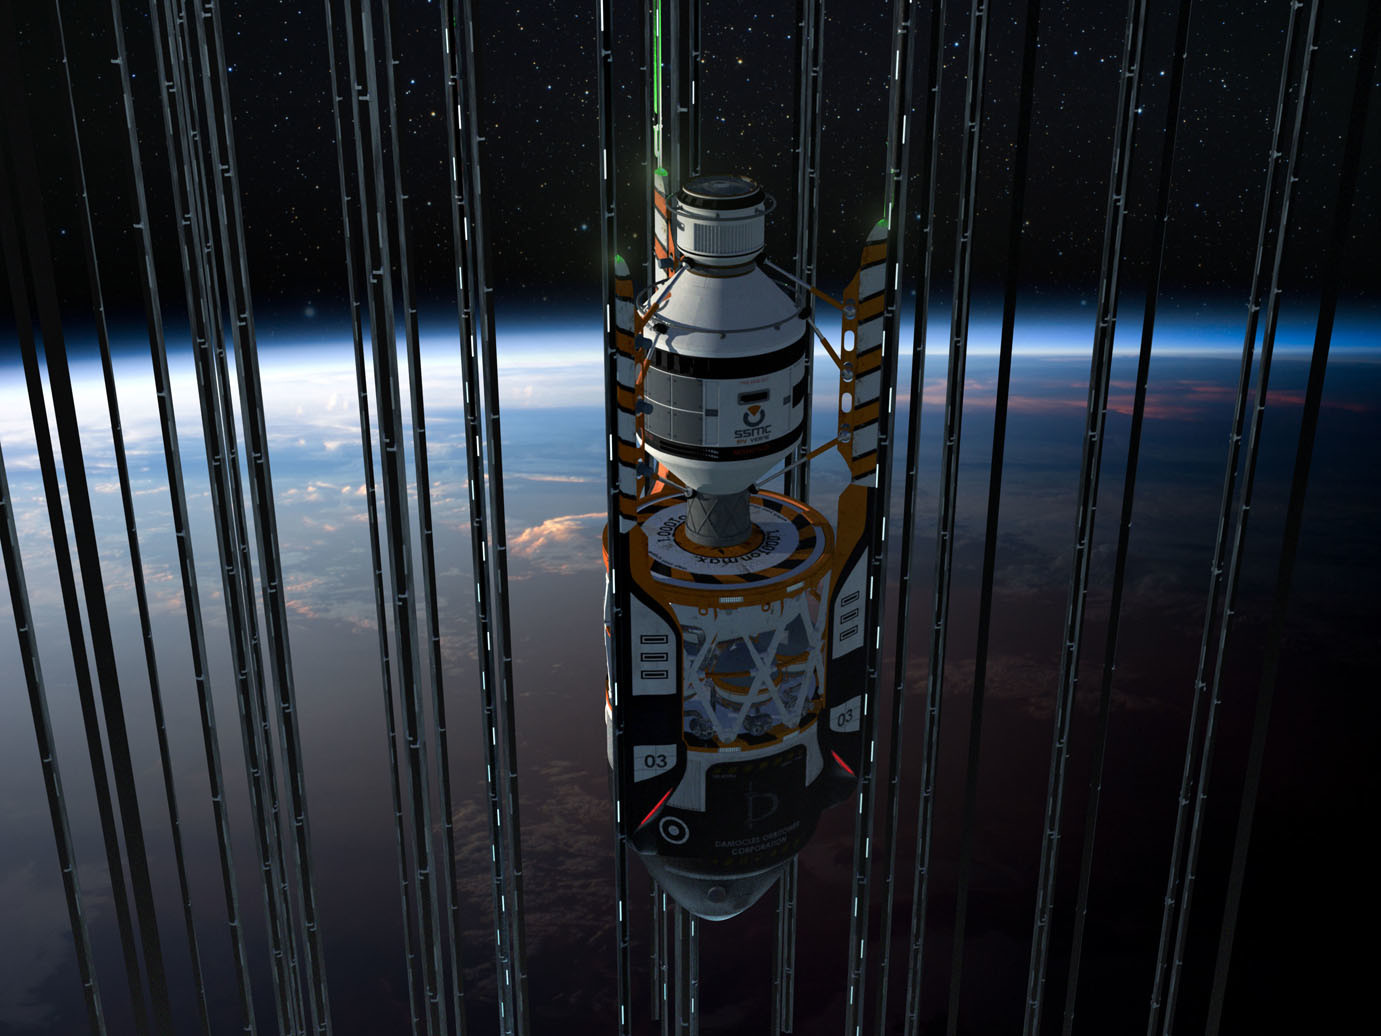 """Damocles is a large space port and elevator hub with stations fixed on [E]arth, located in an enormous, peaceful and very prosperous city, in a not-so-distant future.""\(^{[2]}\)   In the year 2117 the most economical way to send people and cargo to outer space is using a space elevator. It's not the quickest option but a very practical and effective one. Just like other similar Orbitowers placed on the Equator, the Damocles elevator hub provides this service.  Space freight elevators are crucial to carry large components of interplanetary and the earlier interstellar vehicles into orbit, so they can be assembled in space instead of being launched by rockets.   Autonomous trucks and cars arrive at the base's ground to take passengers and cargo to the space elevator cabs. Flying vehicles land on the pads. The building itself is headquarters for many logistics companies, there are some offices and a hotel.""\(^{[2]}\)  Artwork by Sergio Botero at Artstation. \(^{[2]}\)"